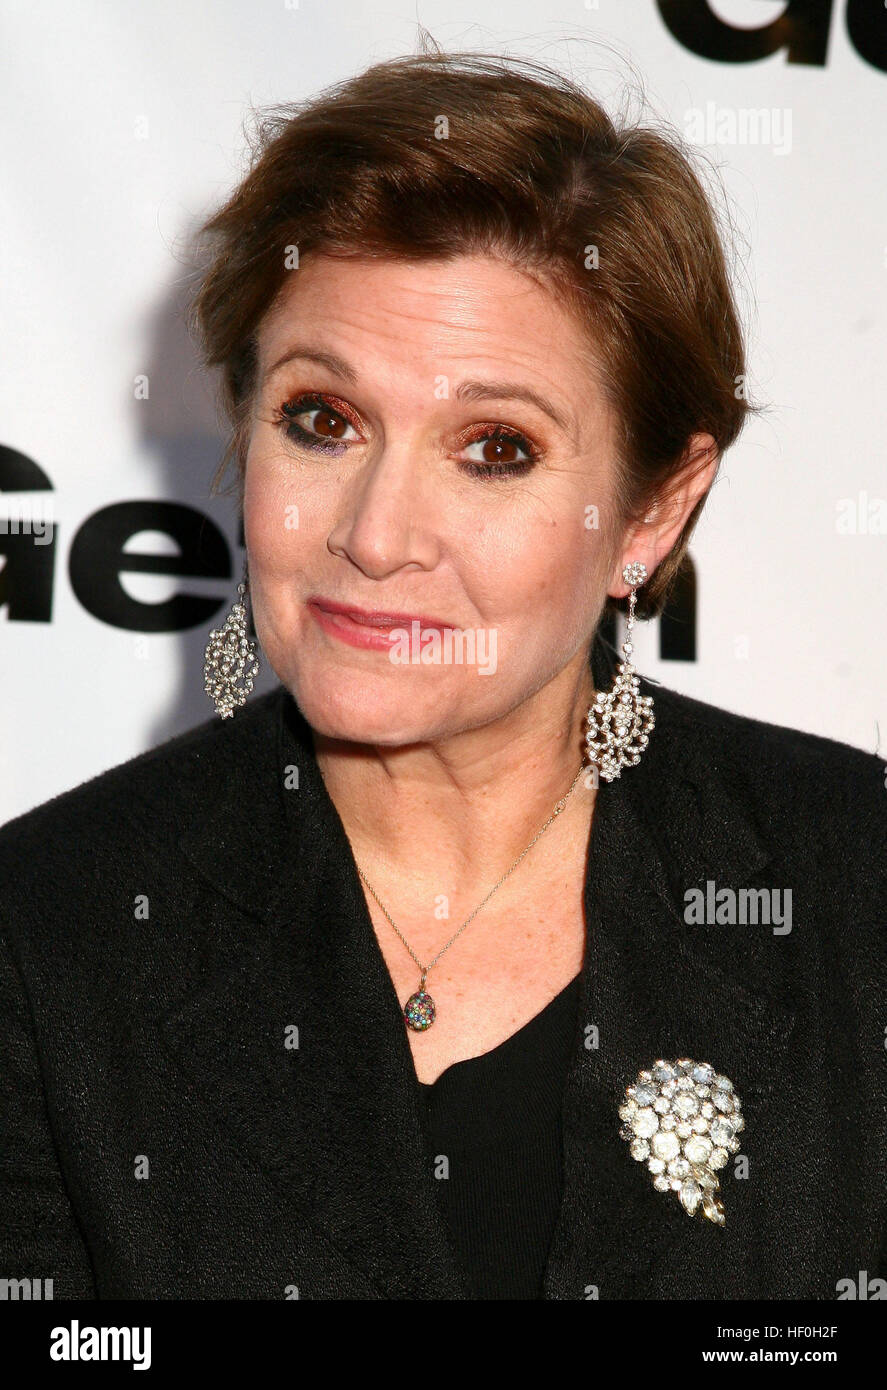 FILE PIC: Westwood, CA, USA. 27th Dec, 2016. 27 December 2016 - Carrie Fisher, the iconic actress who portrayed - Stock Image